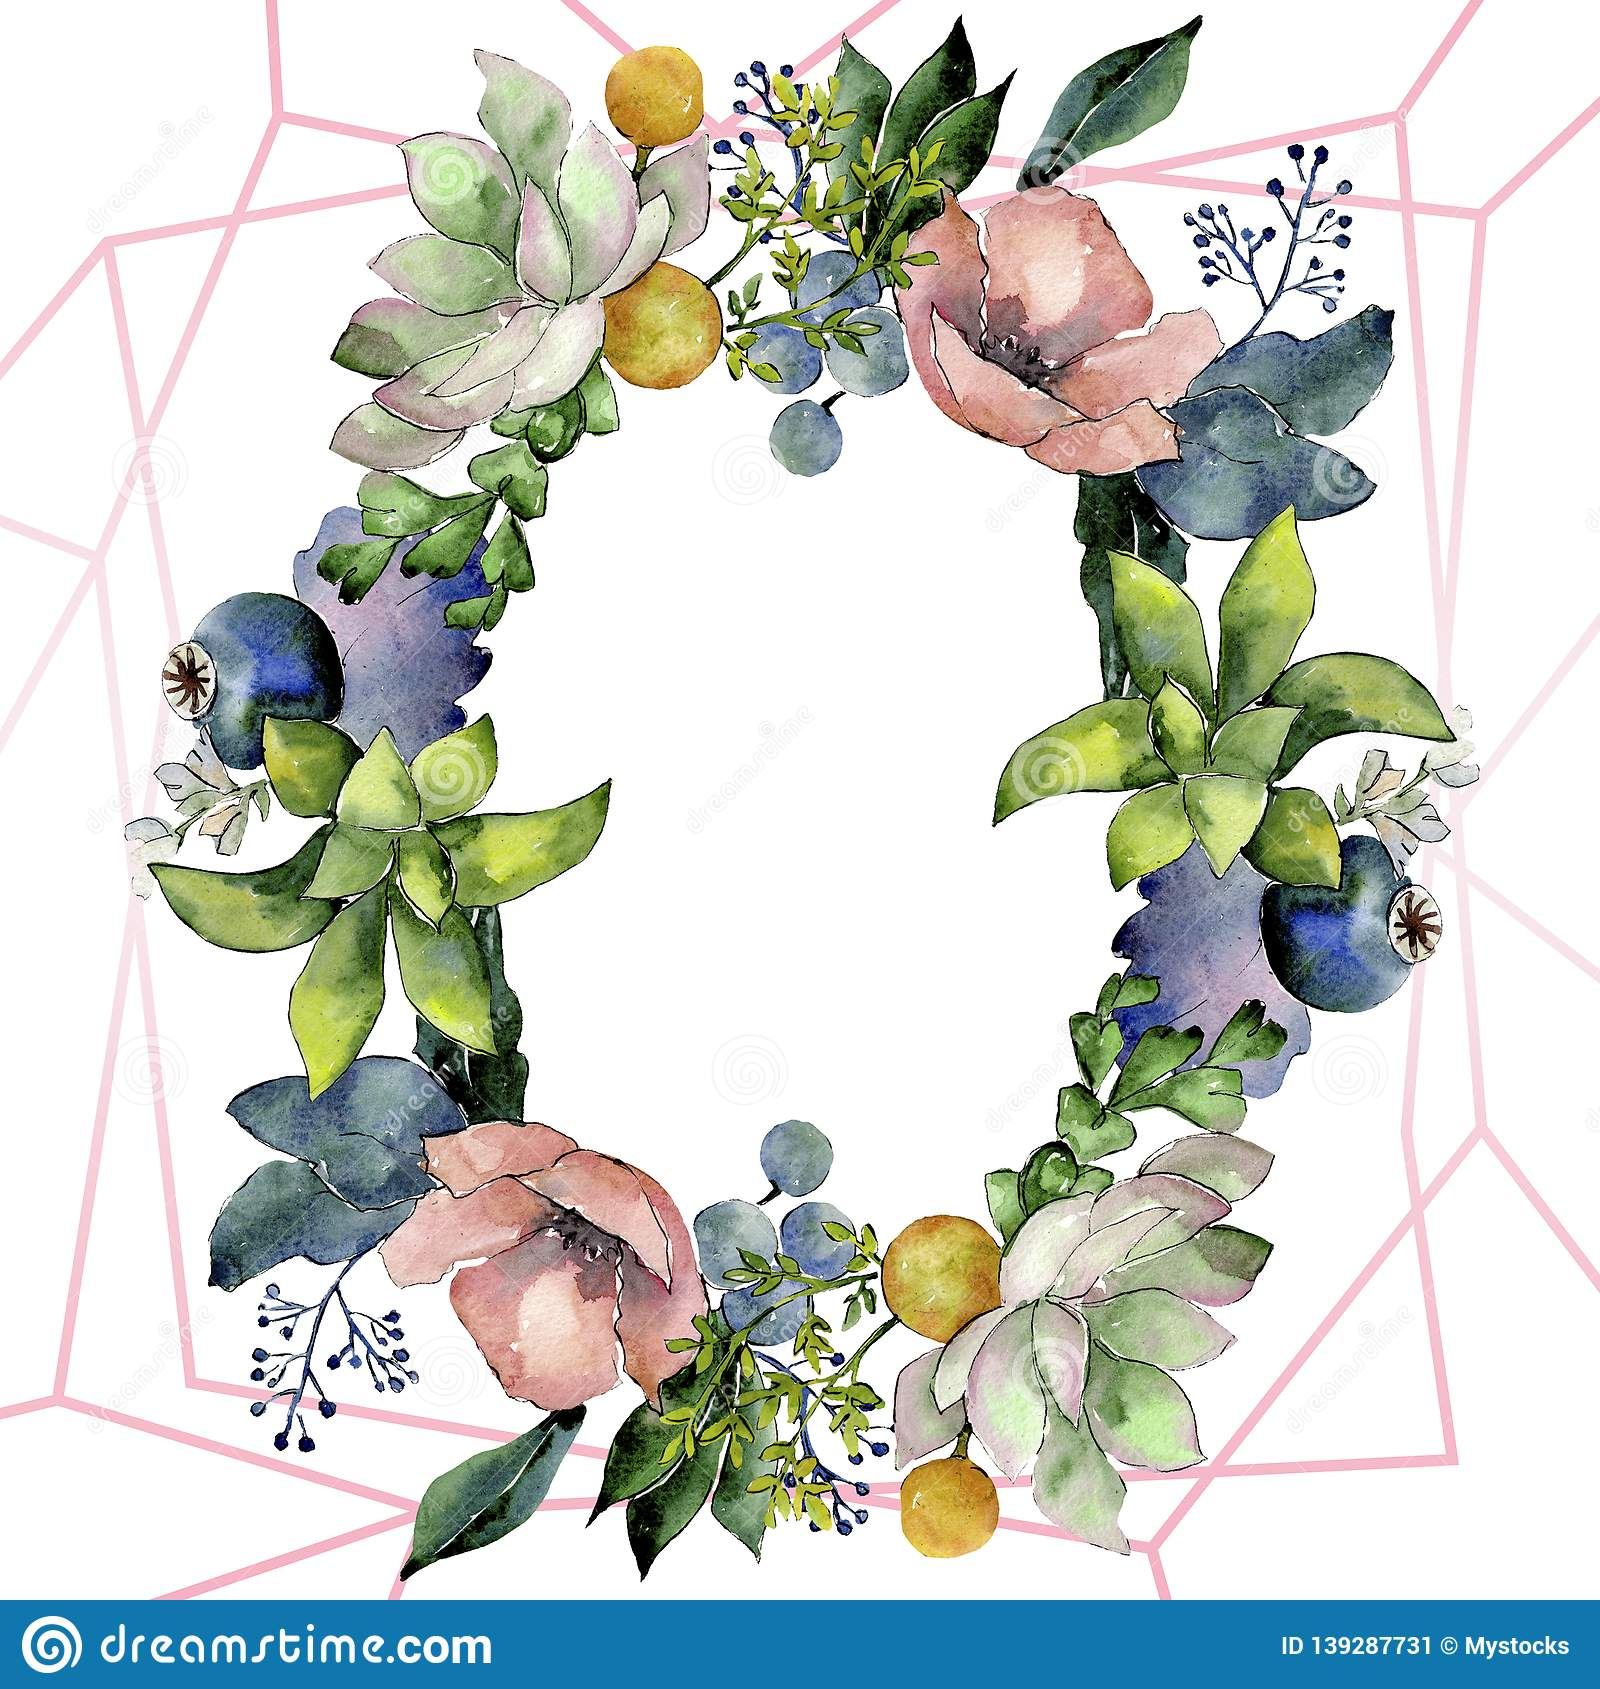 Bouquets With Succulent Botanical Flowers Watercolor Background Illustration Set Frame Border Crystal Ornament Square Stock Illustration Illustration Of Fall Bouquets 139287731